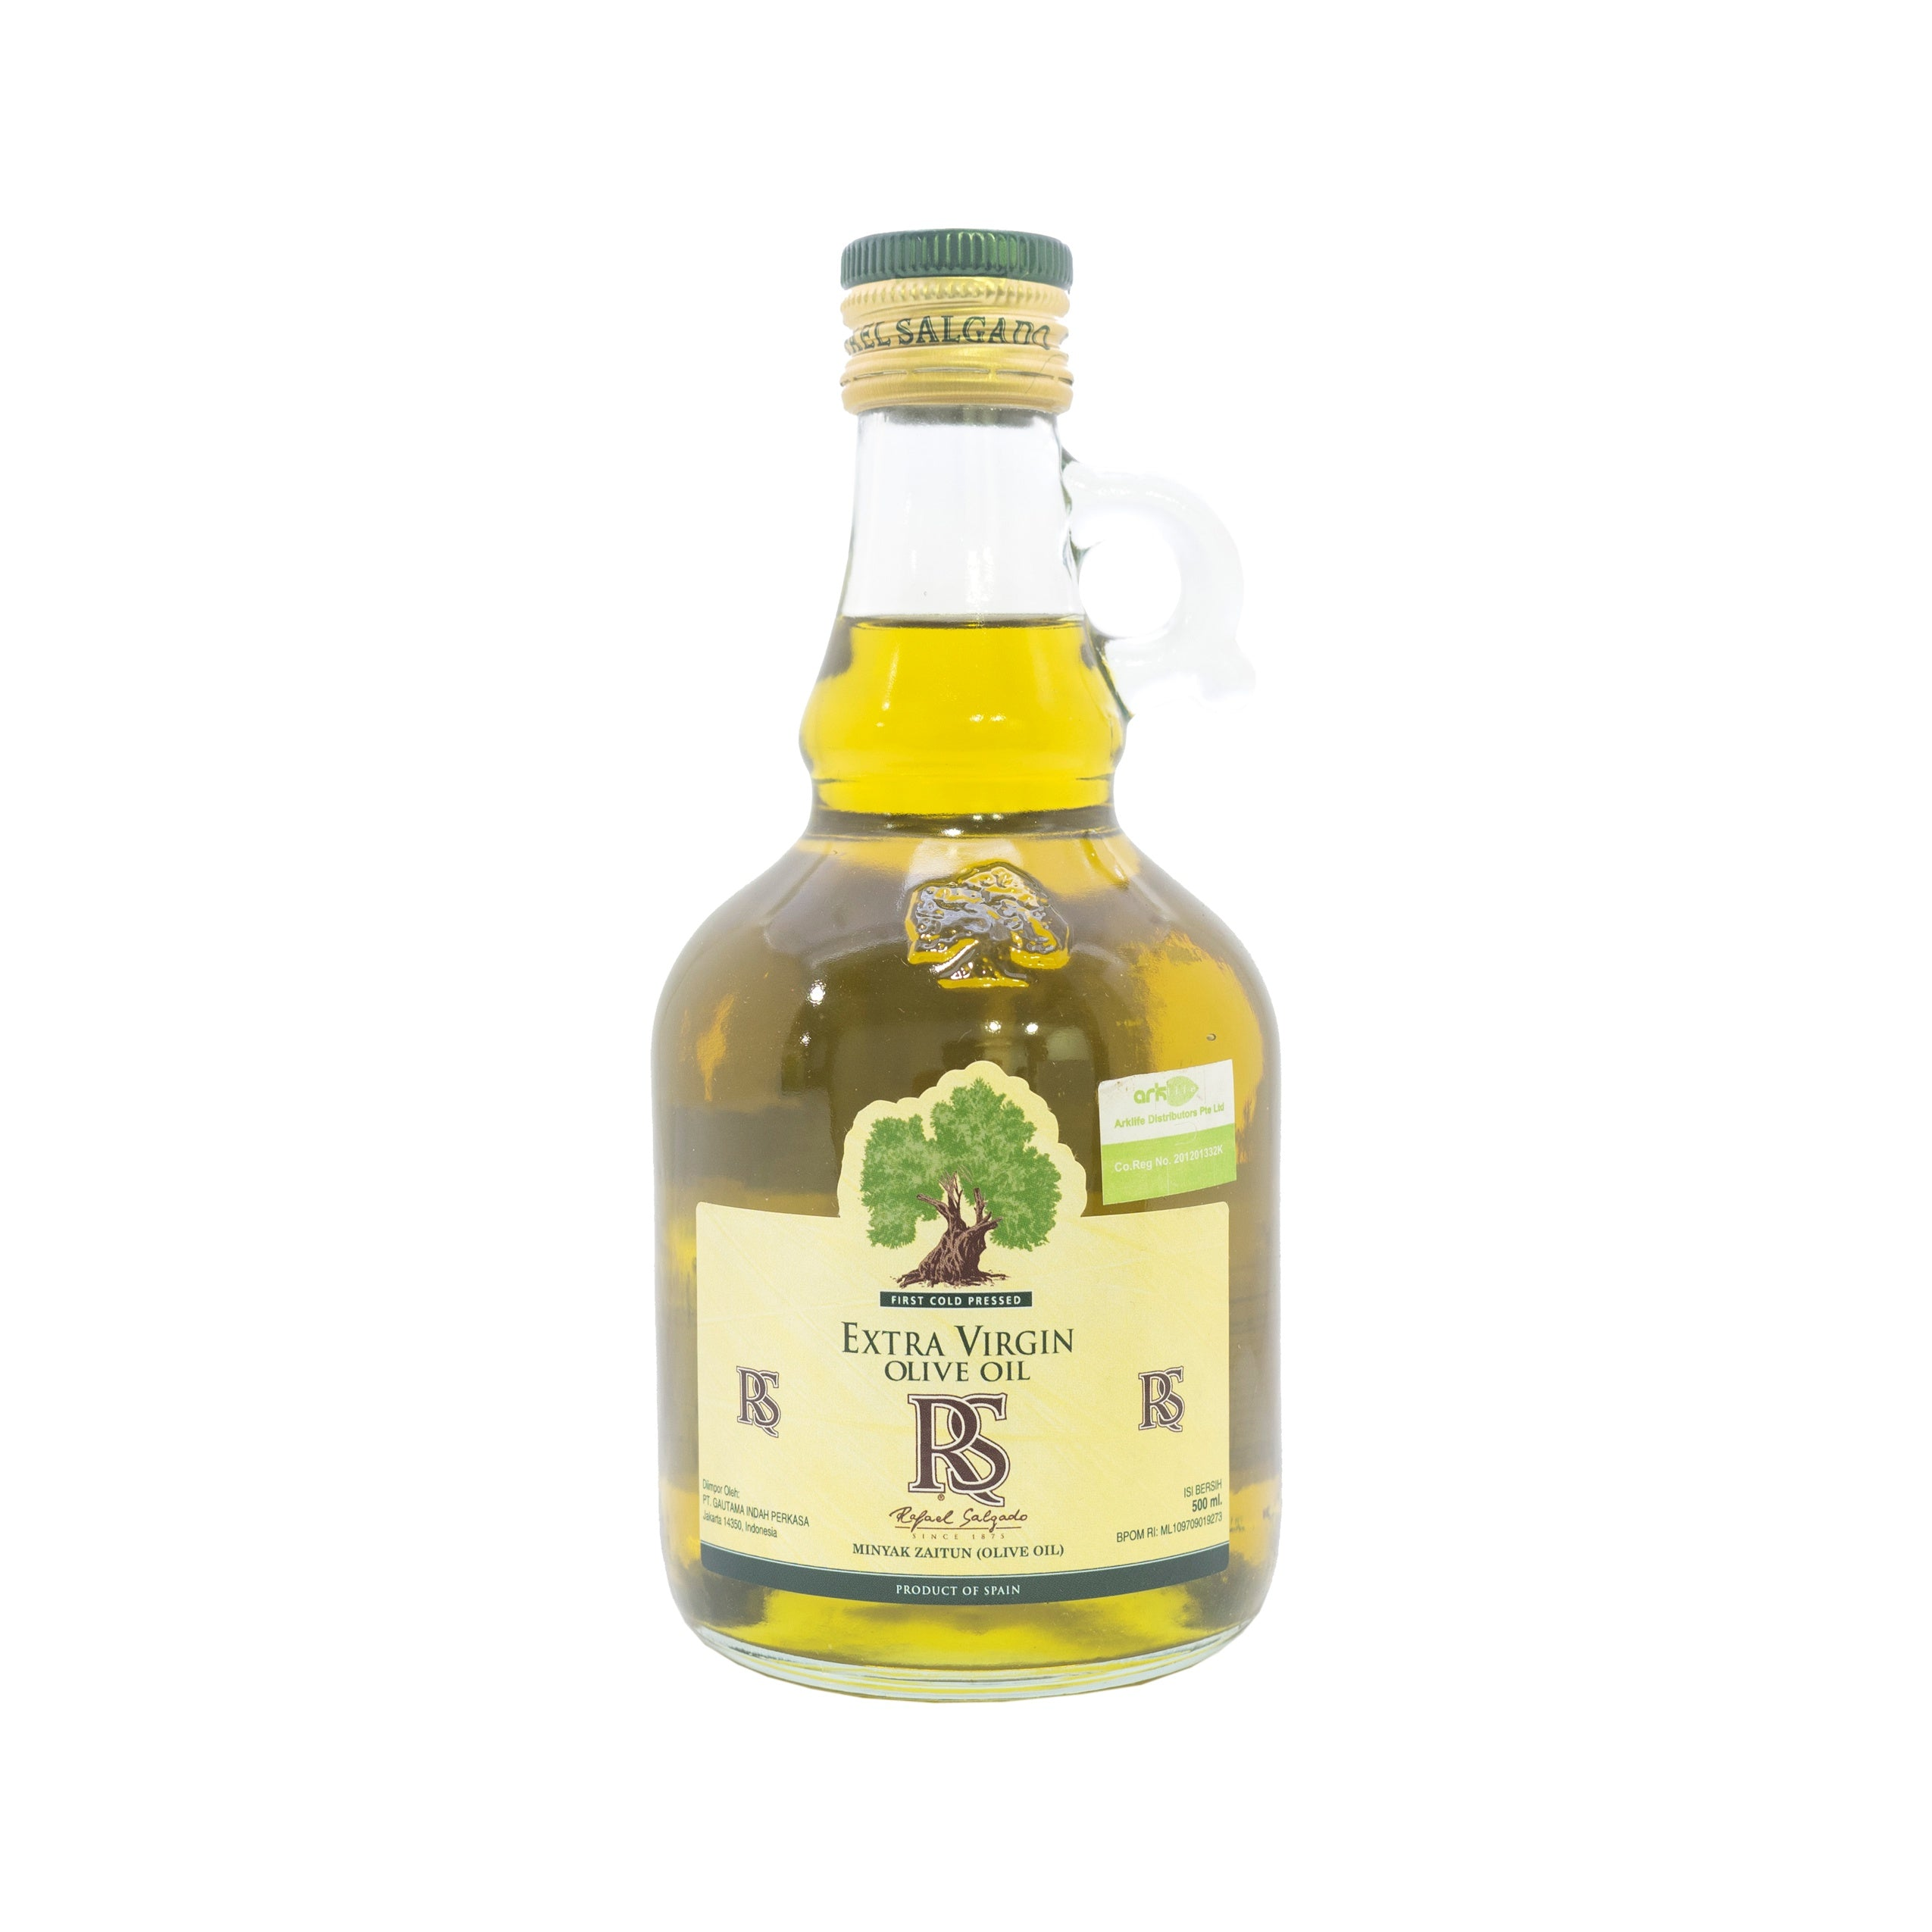 RS, Extra Virgin Olive Oil, 500 ml